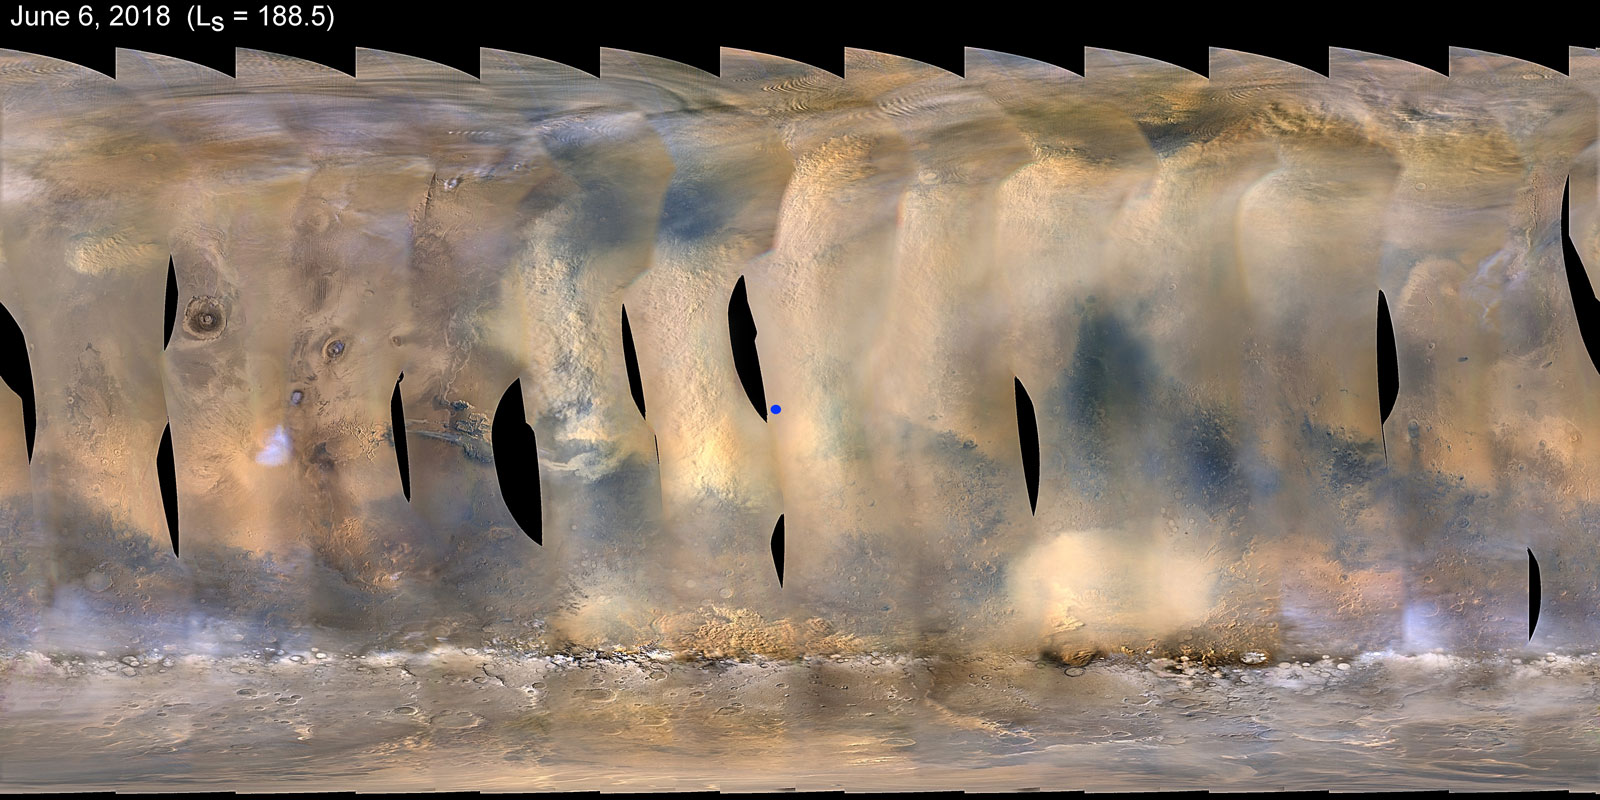 This global map of Mars shows a growing dust storm as of June 6, 2018. The map was produced by the Mars Color Imager (MARCI) camera on NASA's Mars Reconnaissance Orbiter spacecraft. The blue dot indicates the approximate location of Opportunity.